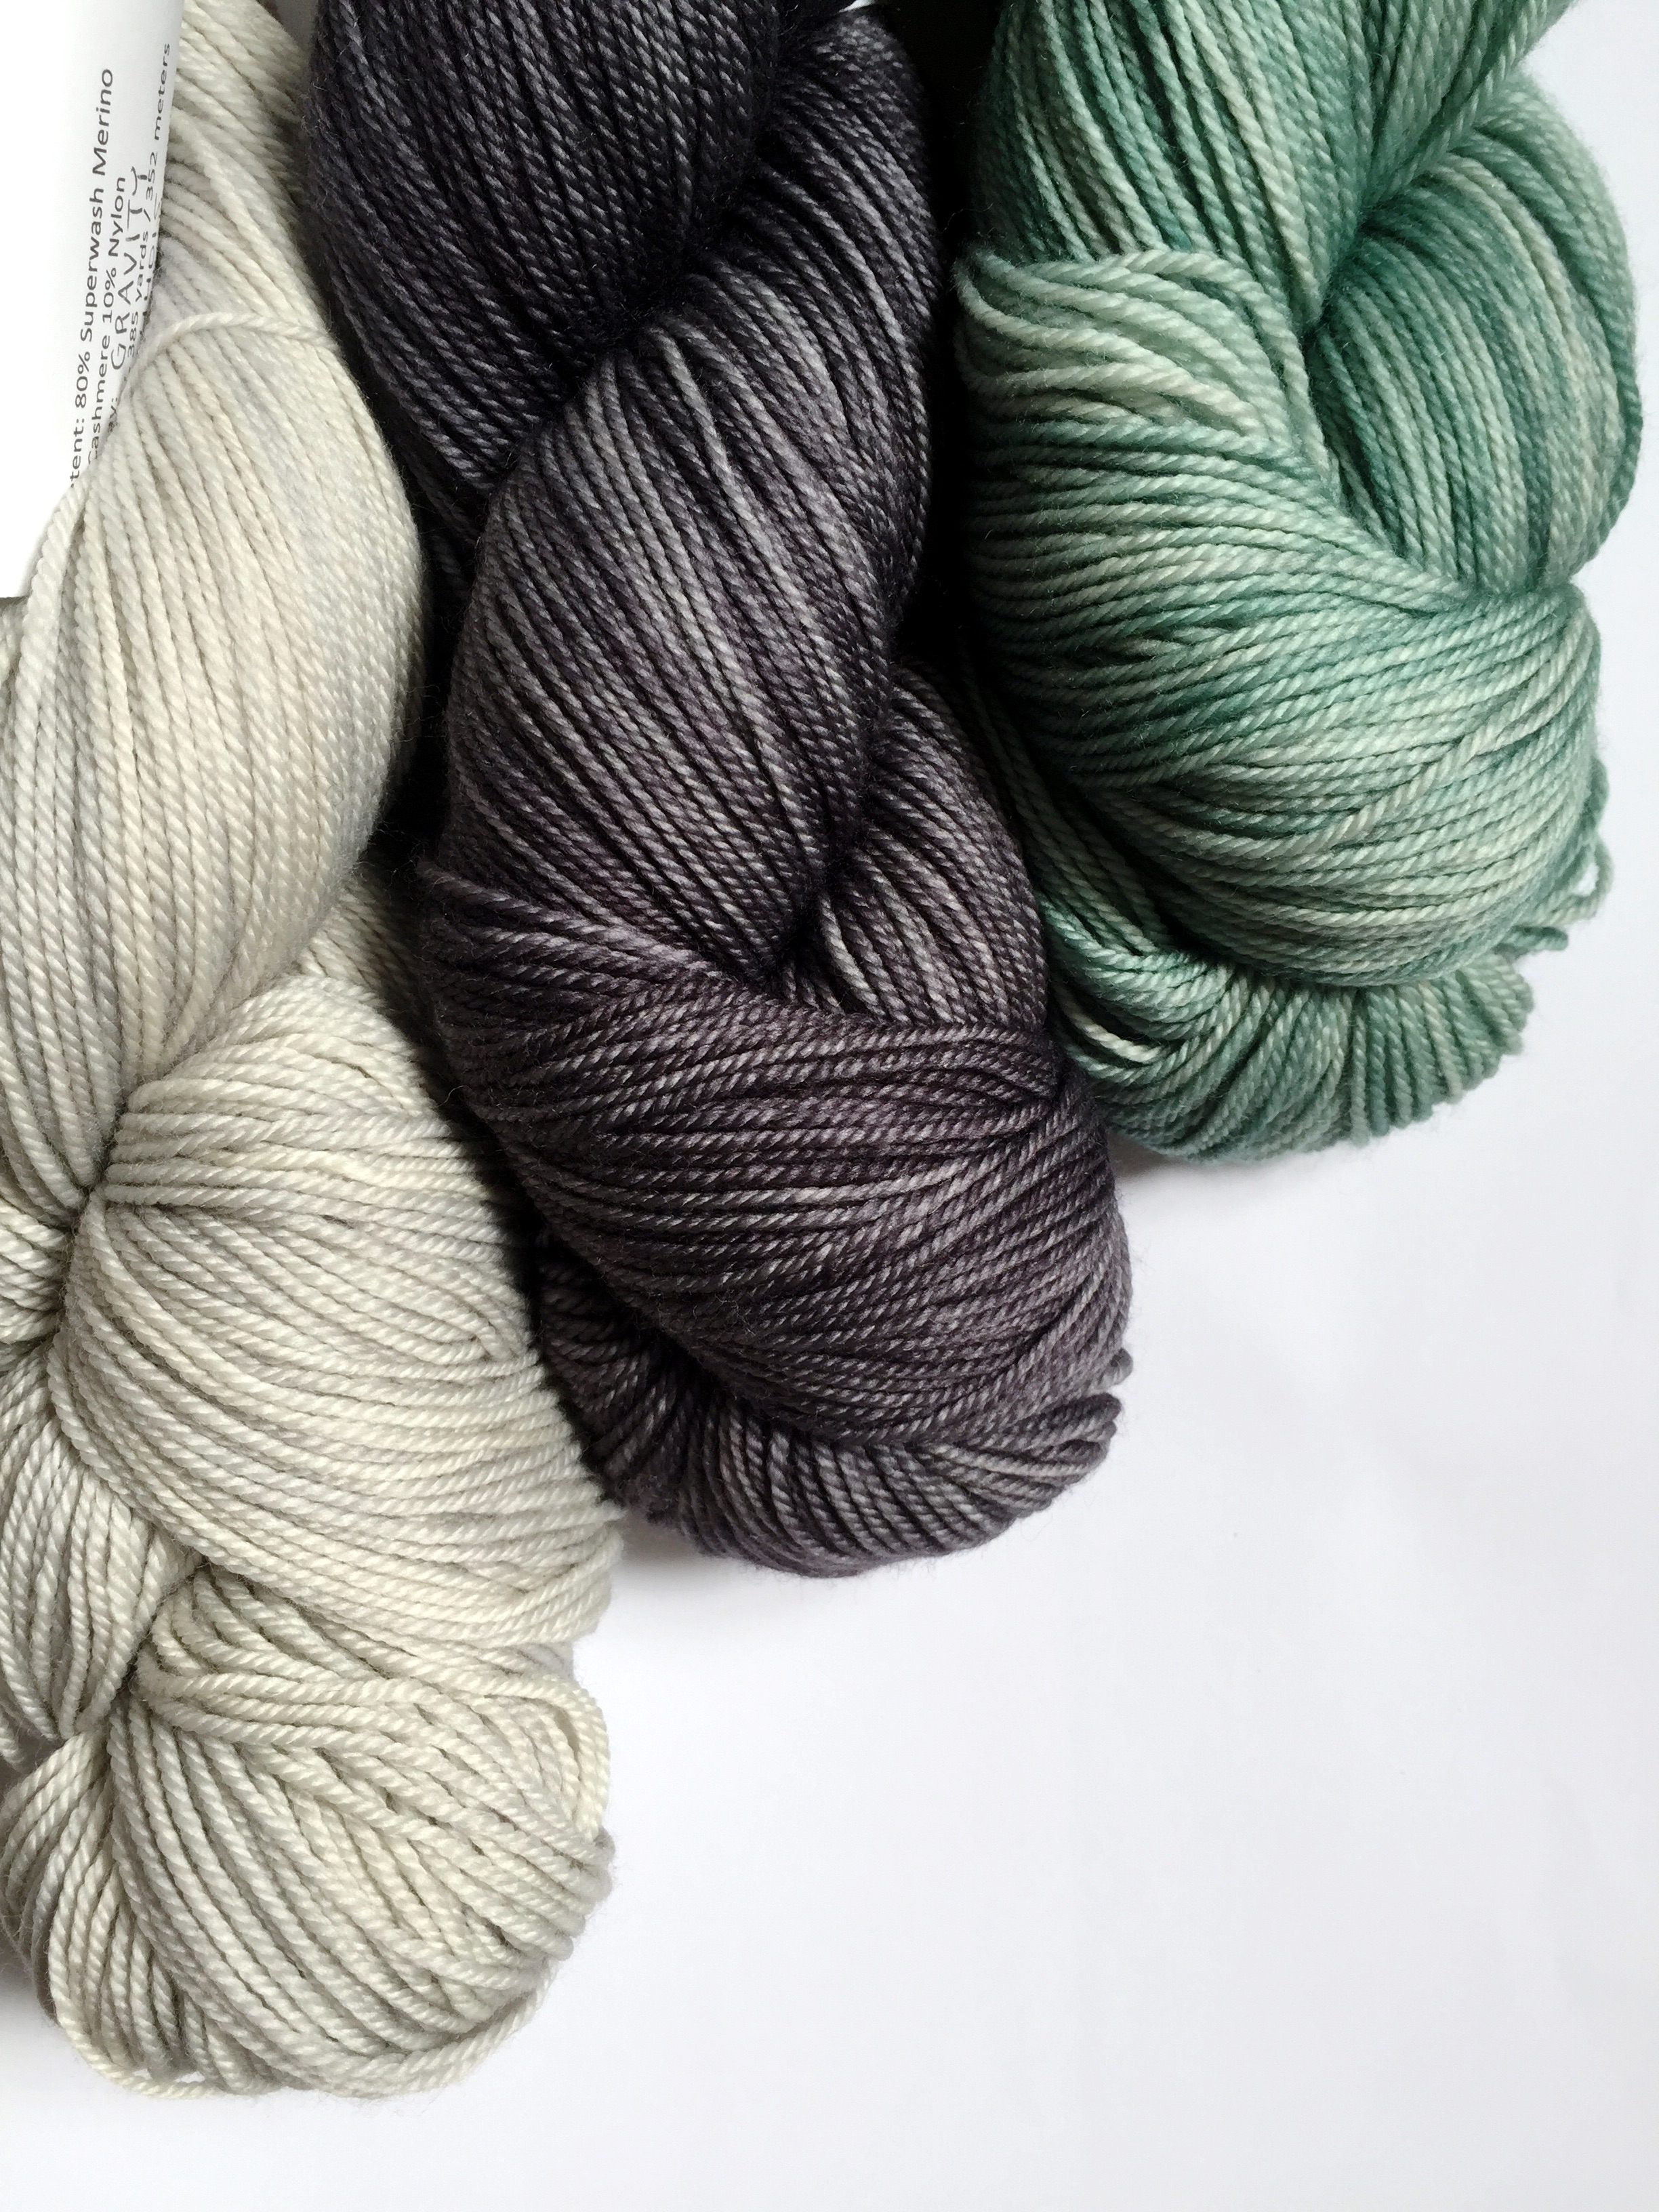 3 colours of Anzula Squishy